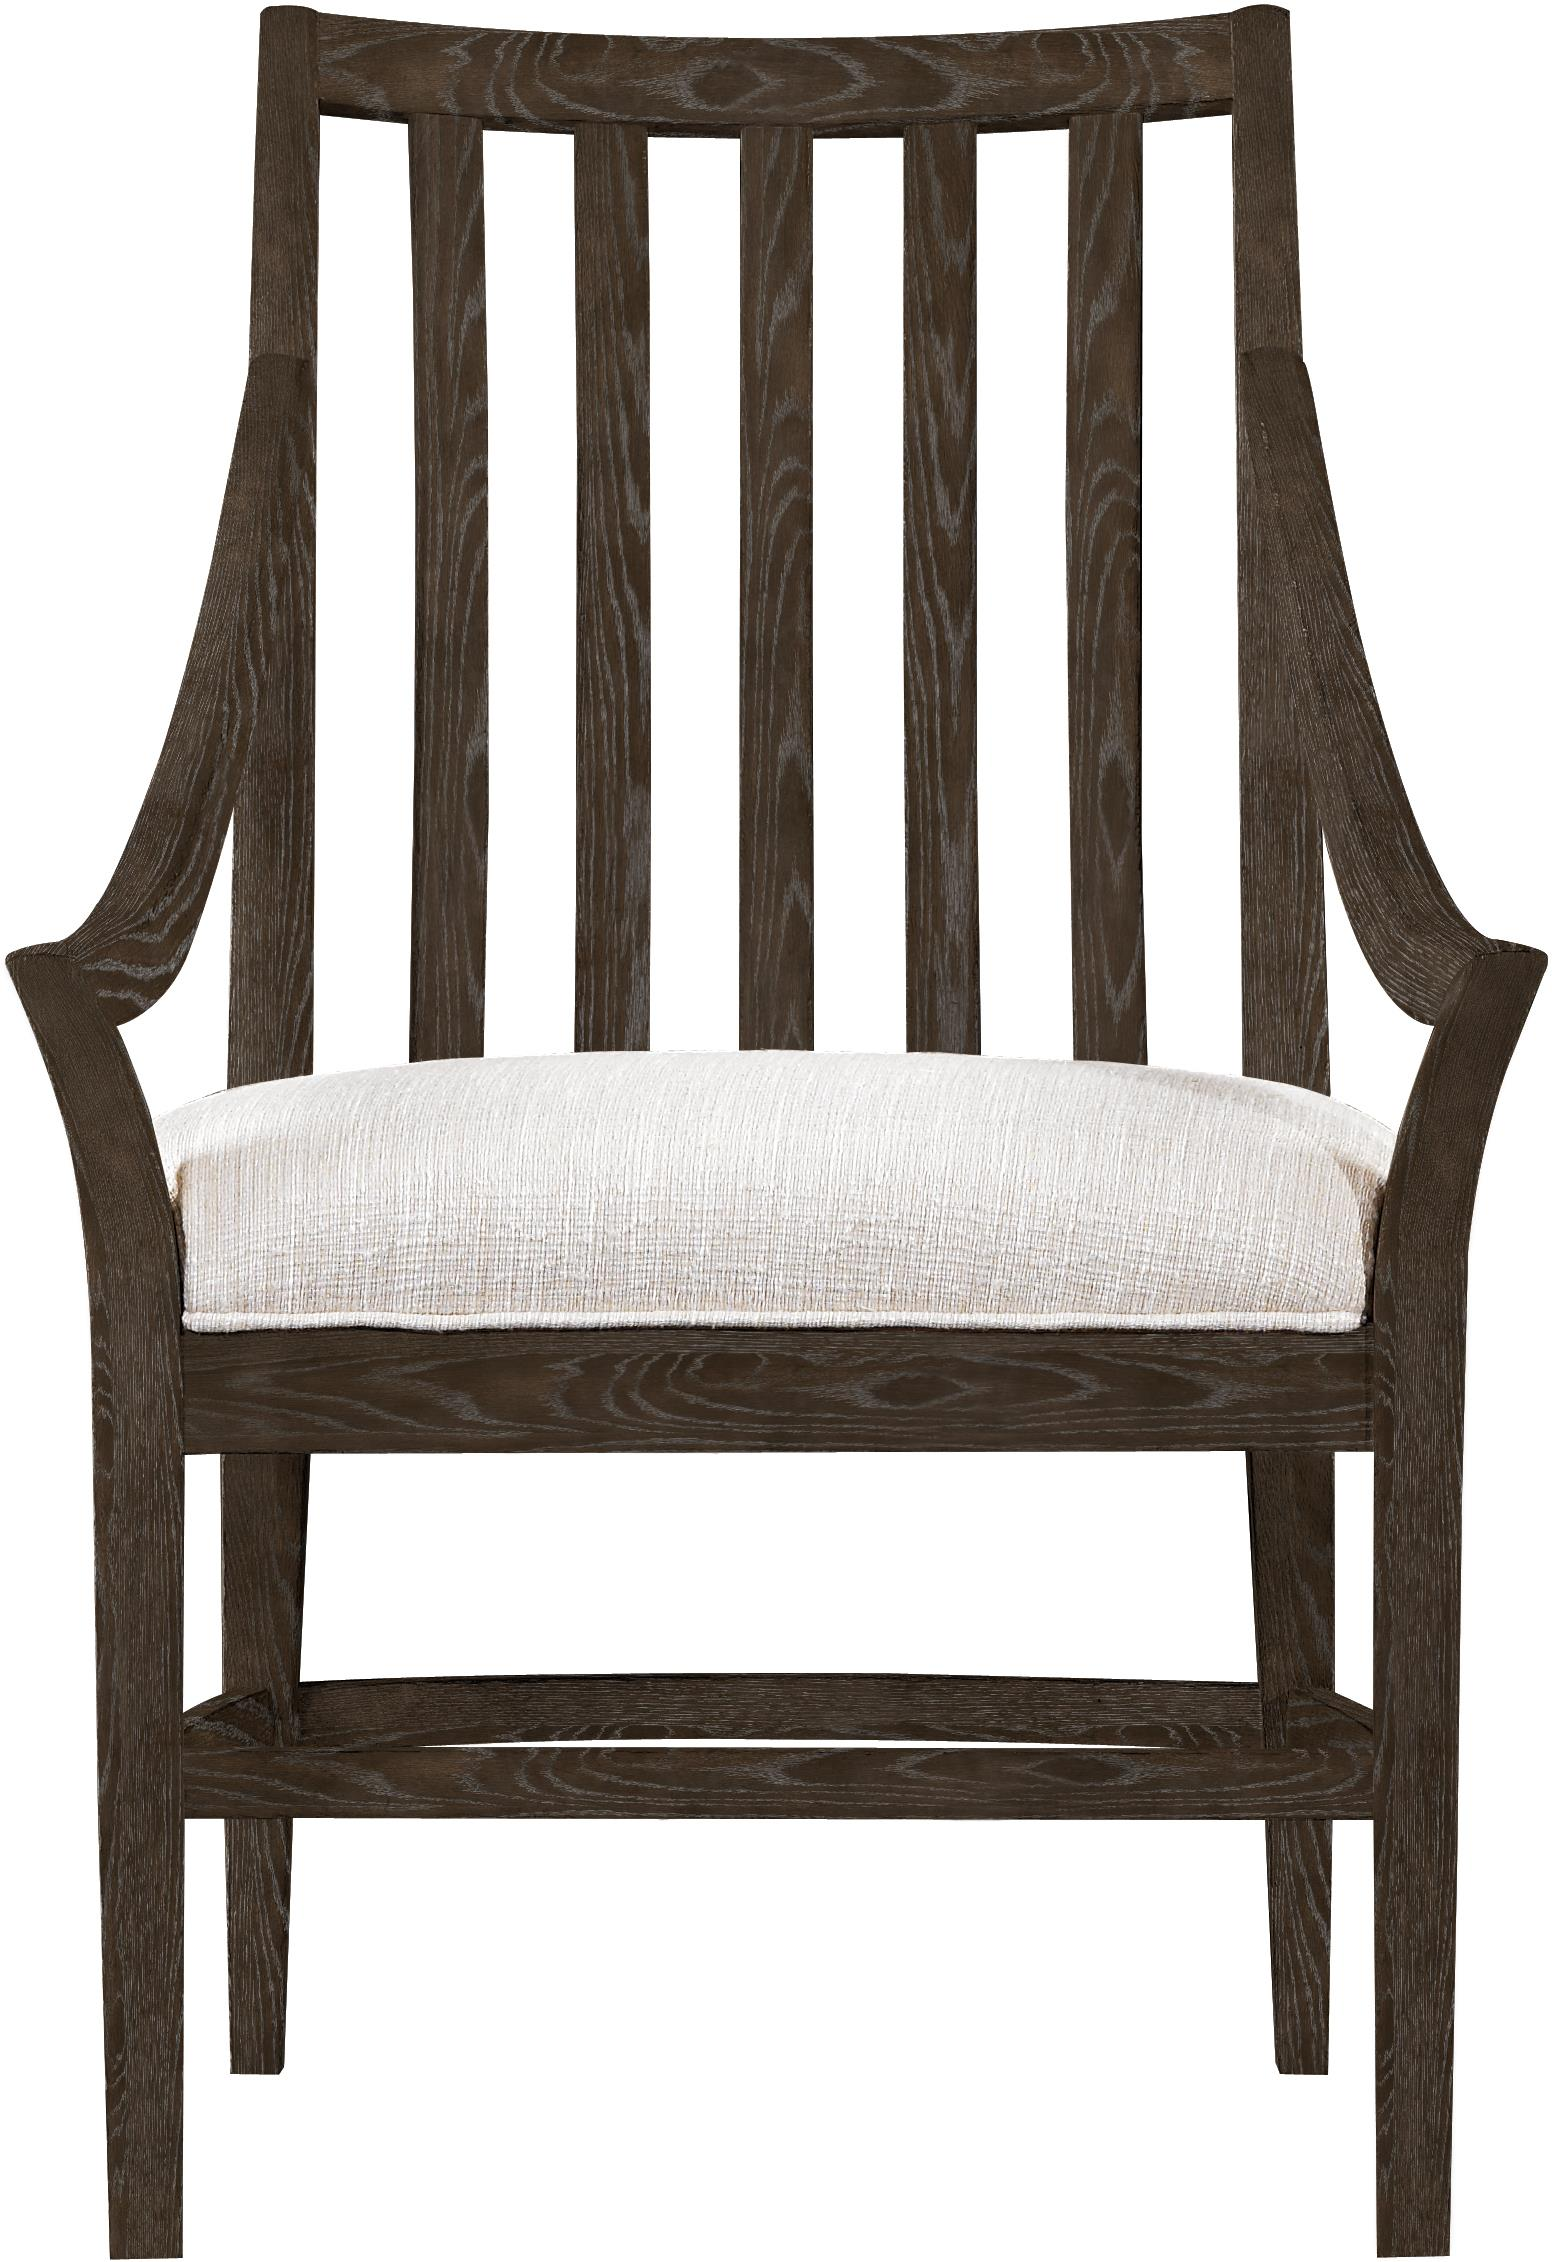 Stanley Furniture Coastal Living Resort By the Bay Dining Chair - Item Number: 062-11-65